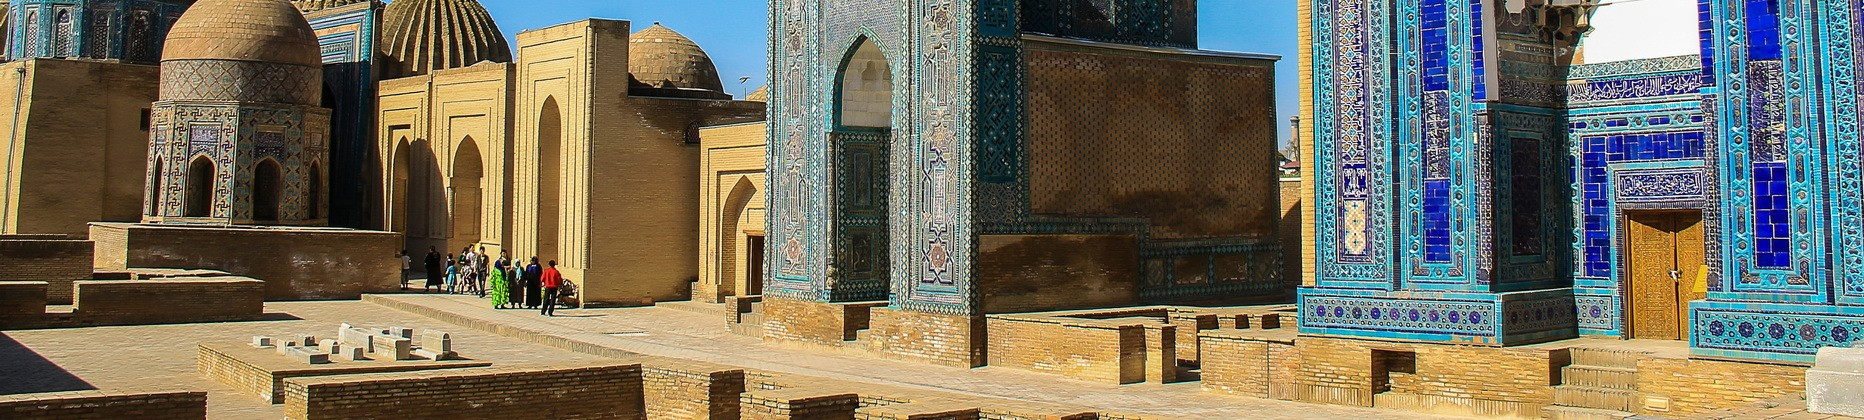 One-day tour in Samarkand by train - 1